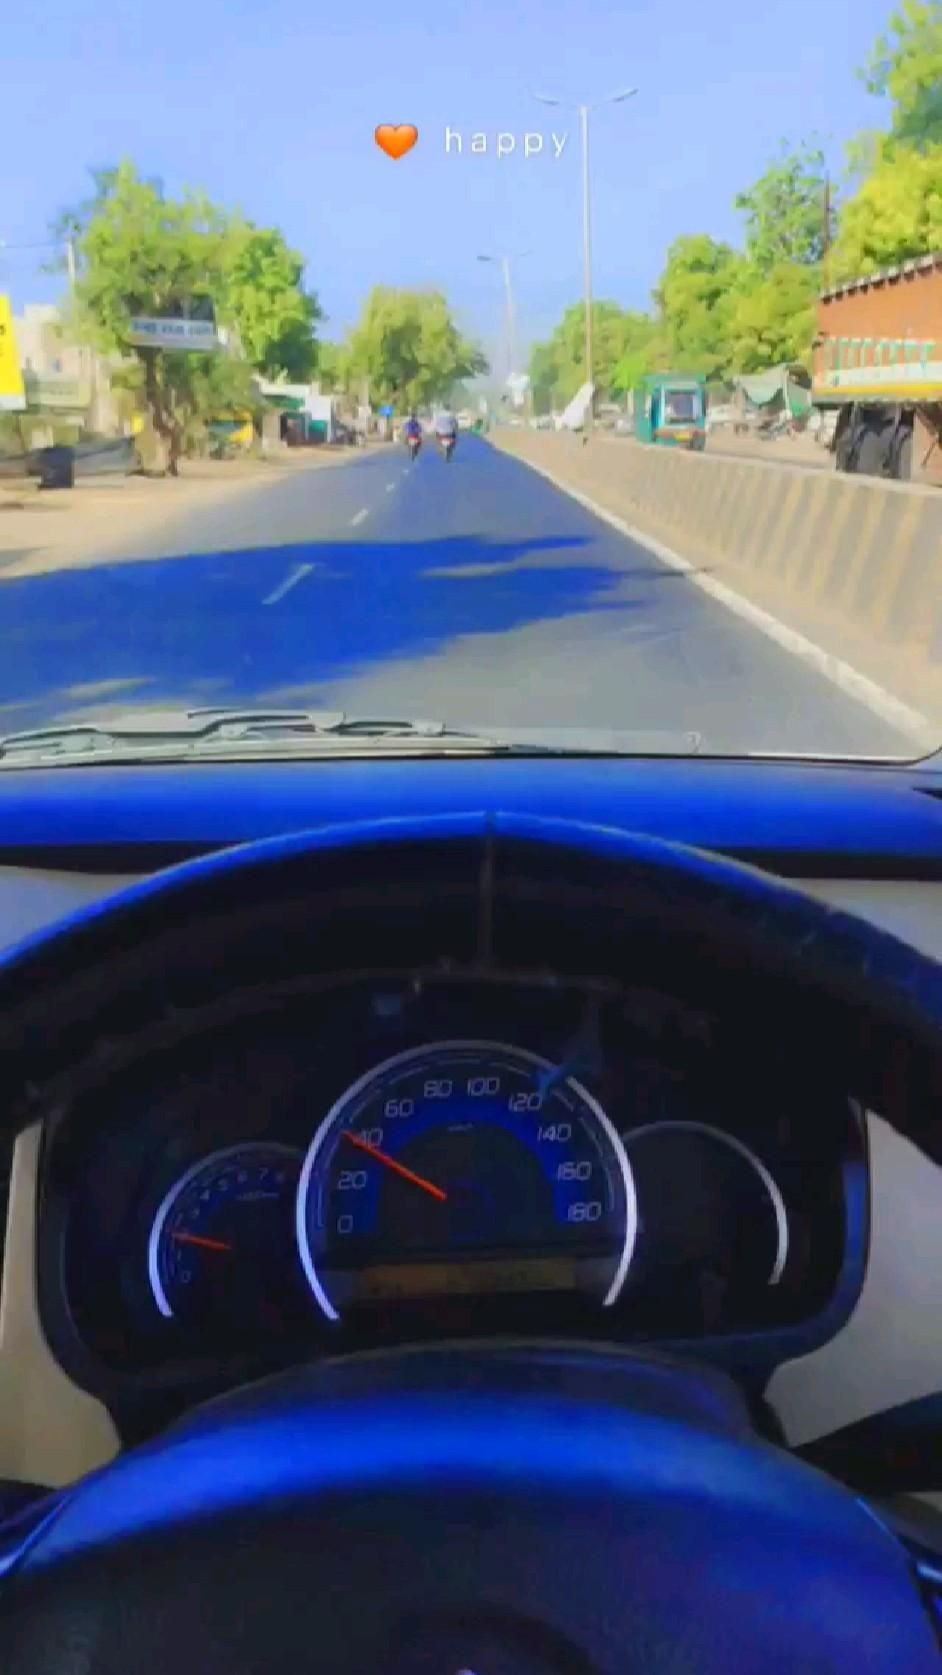 Wagonr drive missing song 🔥🔥